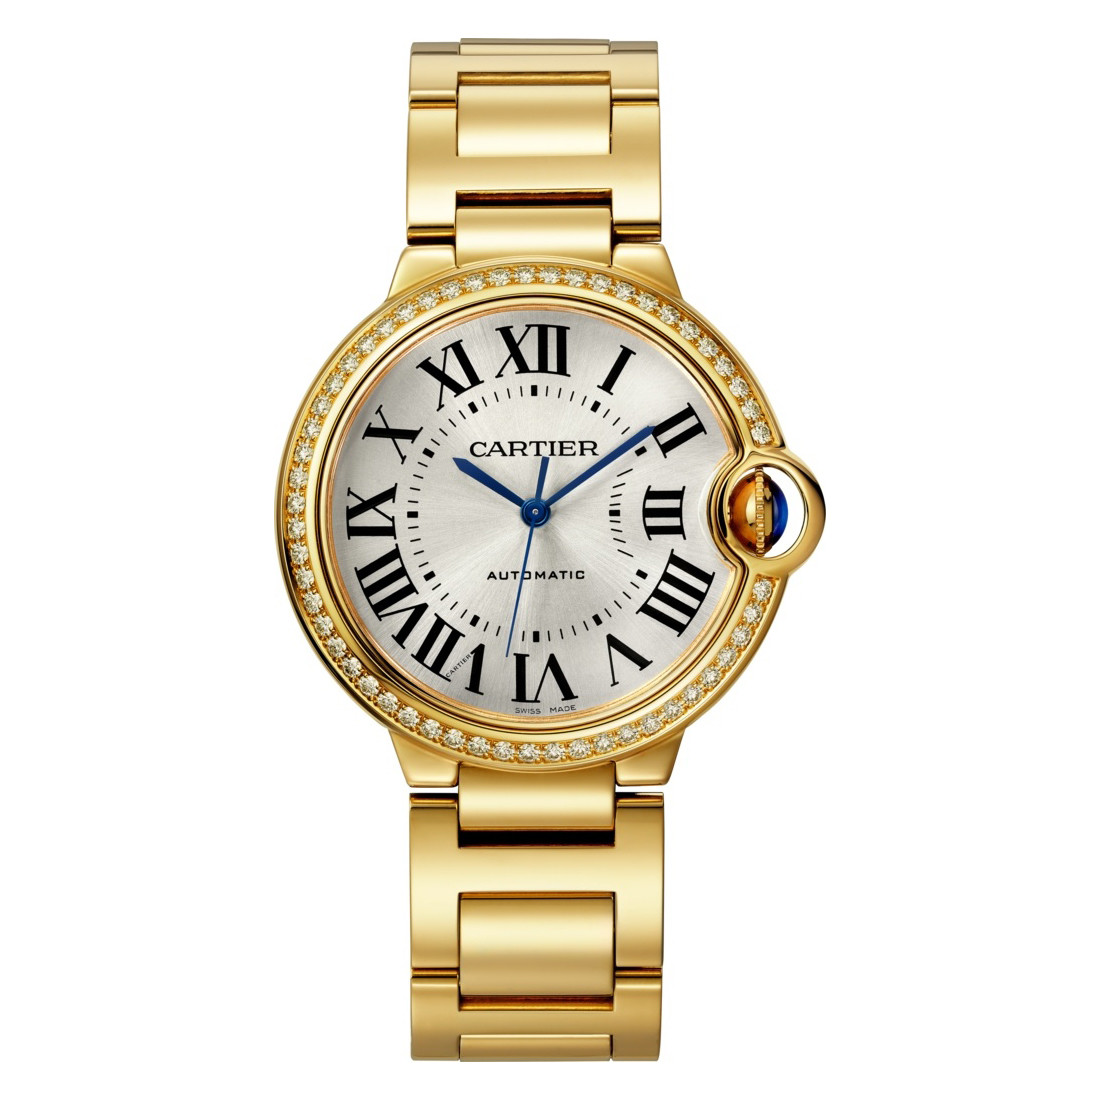 Ballon Bleu 36mm Yellow Gold & Diamond (WJBB0043)